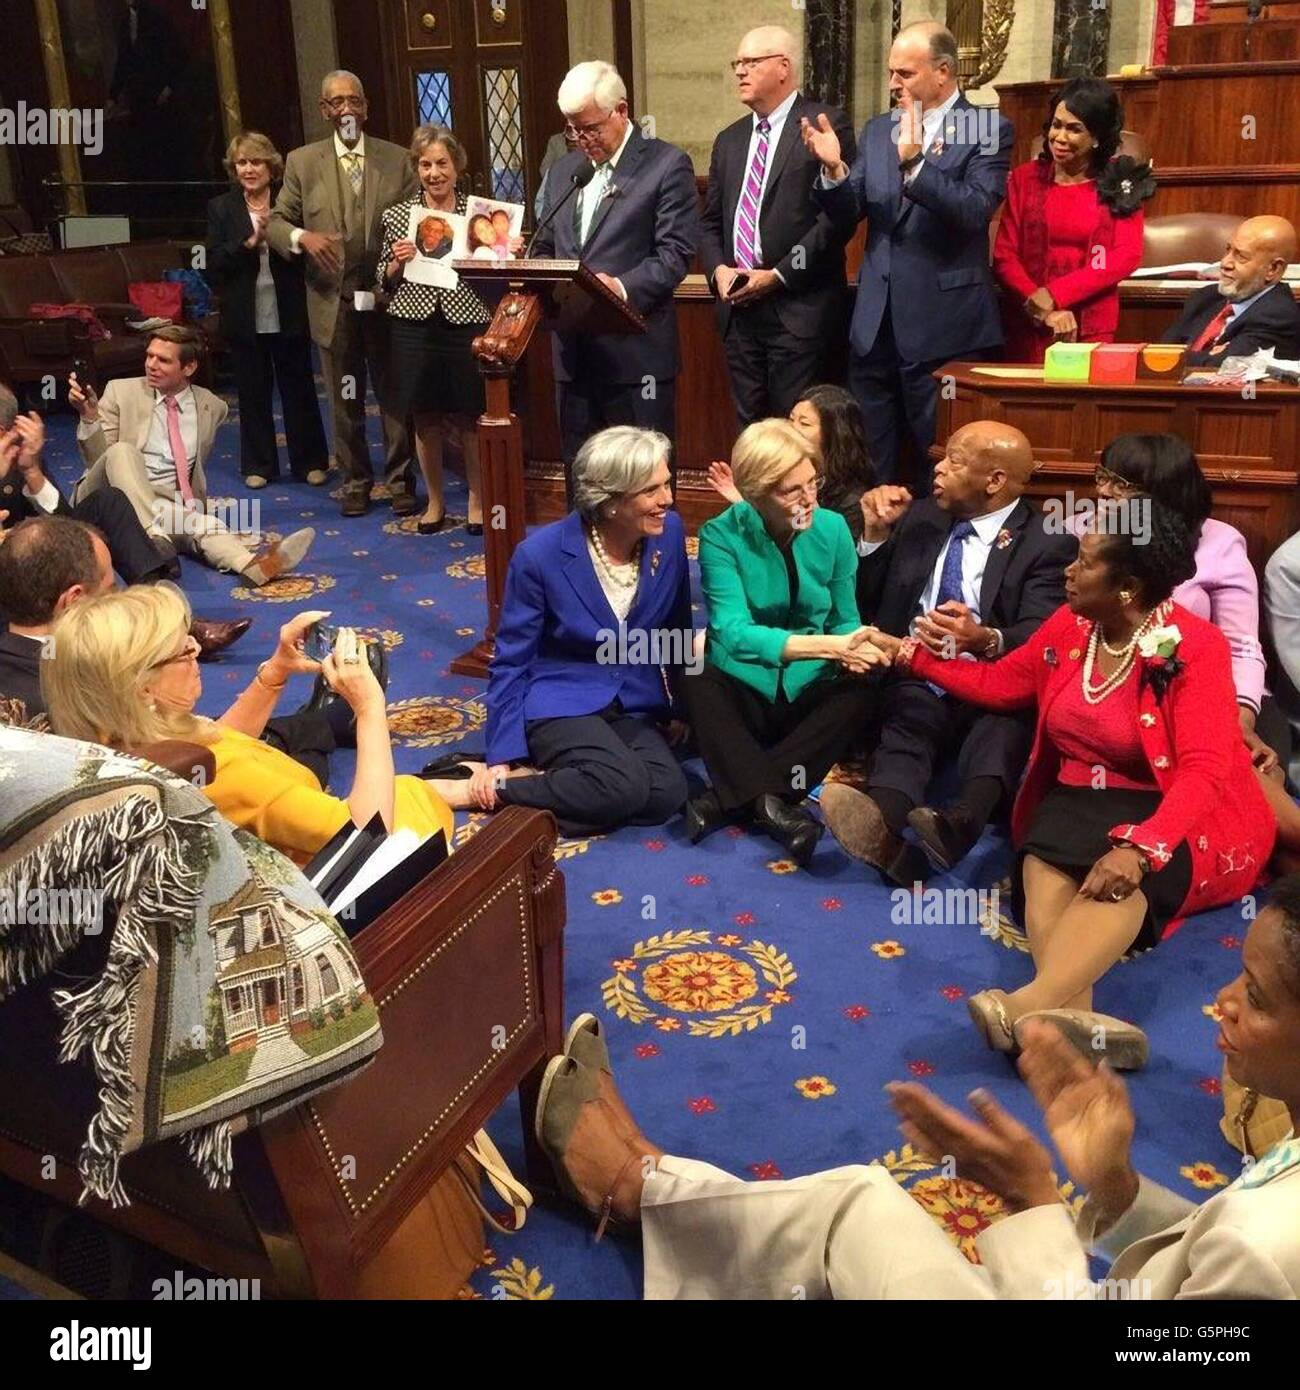 Washington DC., USA. 22nd June, 2016. U.S Rep. John Lewis, sitting right, leads a group of Democrats from the House - Stock Image